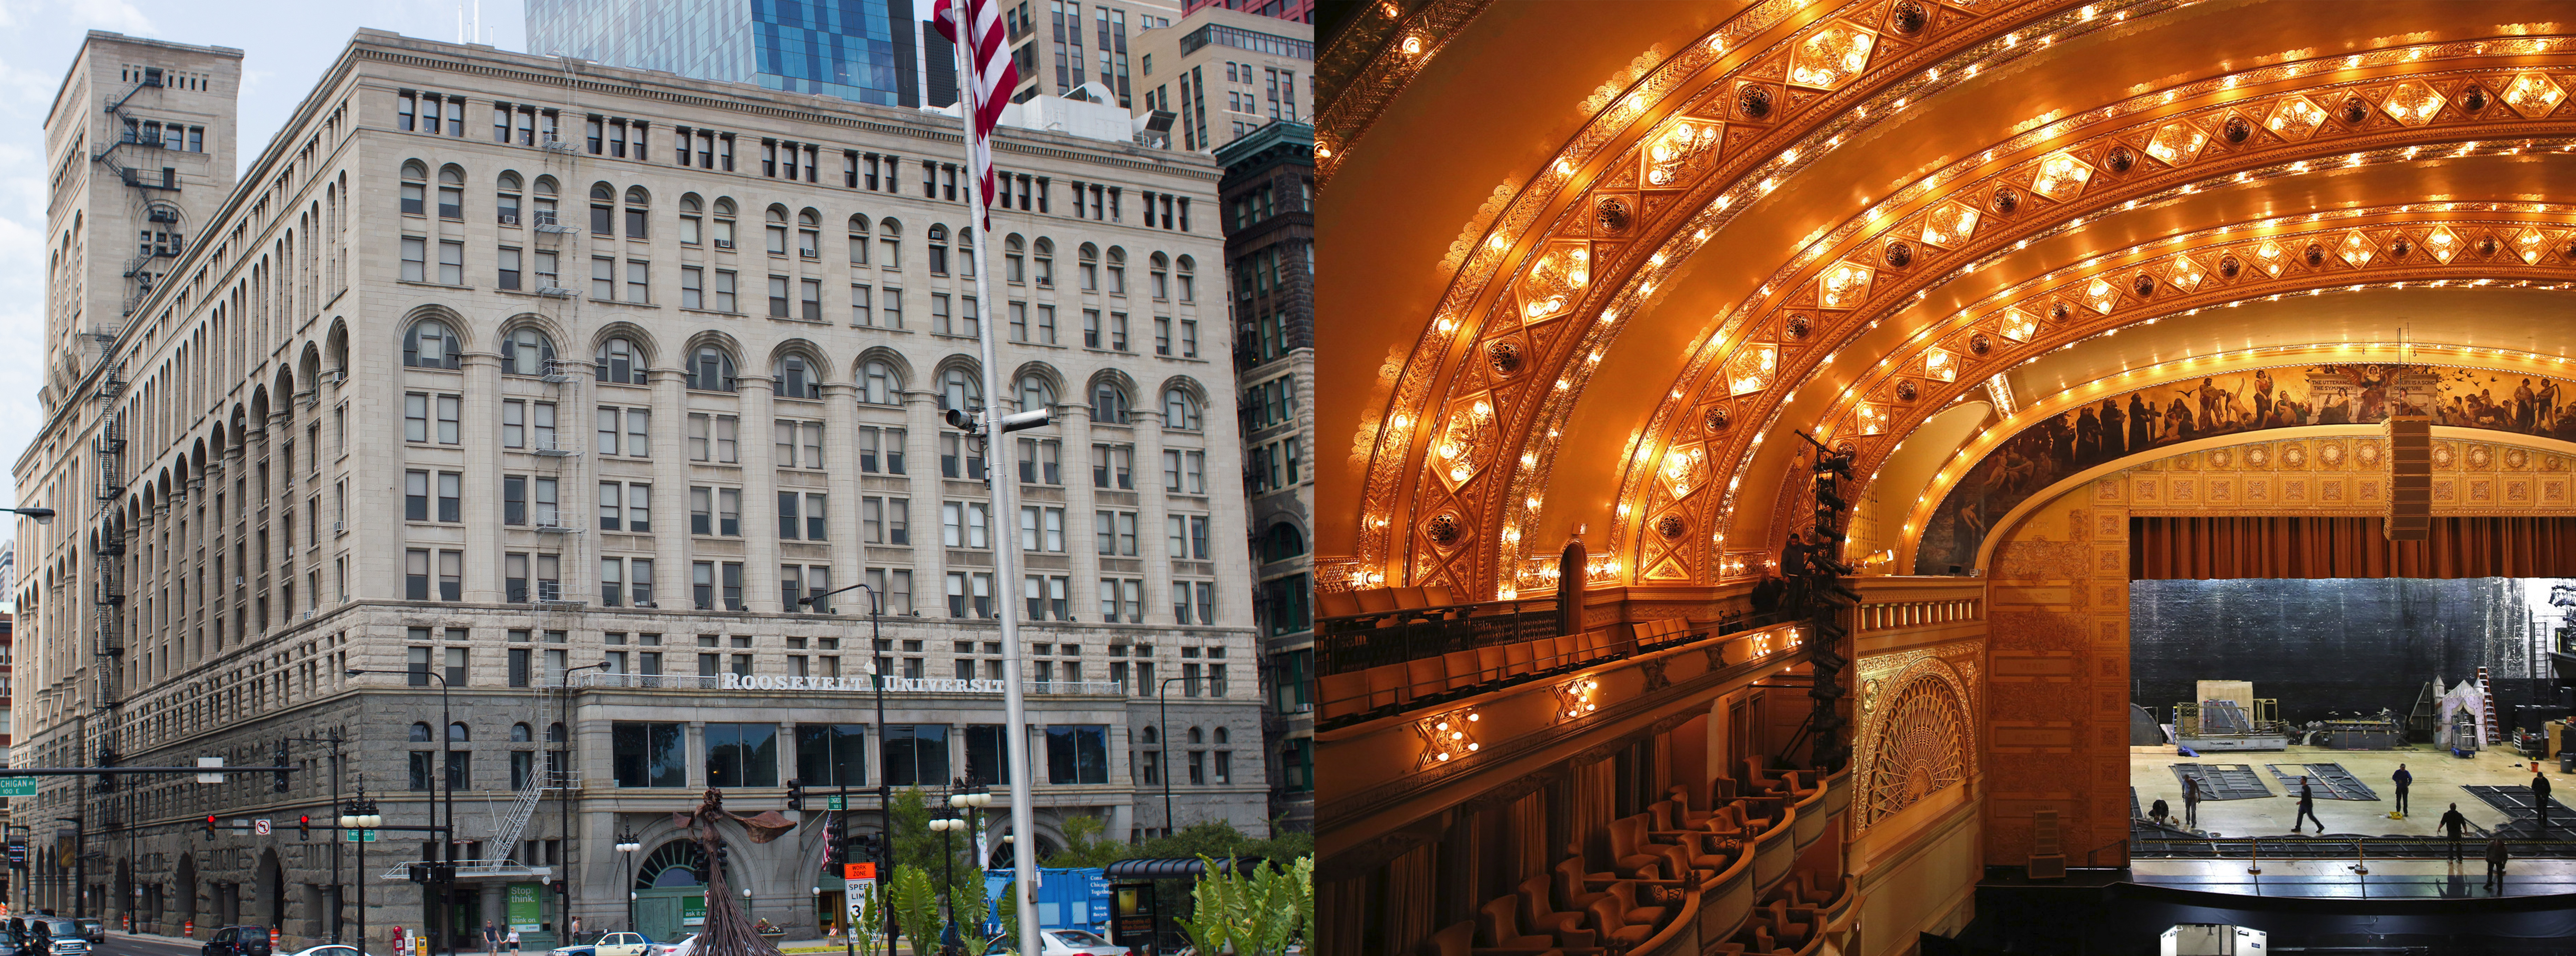 "15 Projects by ""Father of Skyscrapers"" Louis Sullivan - Auditorium Building"